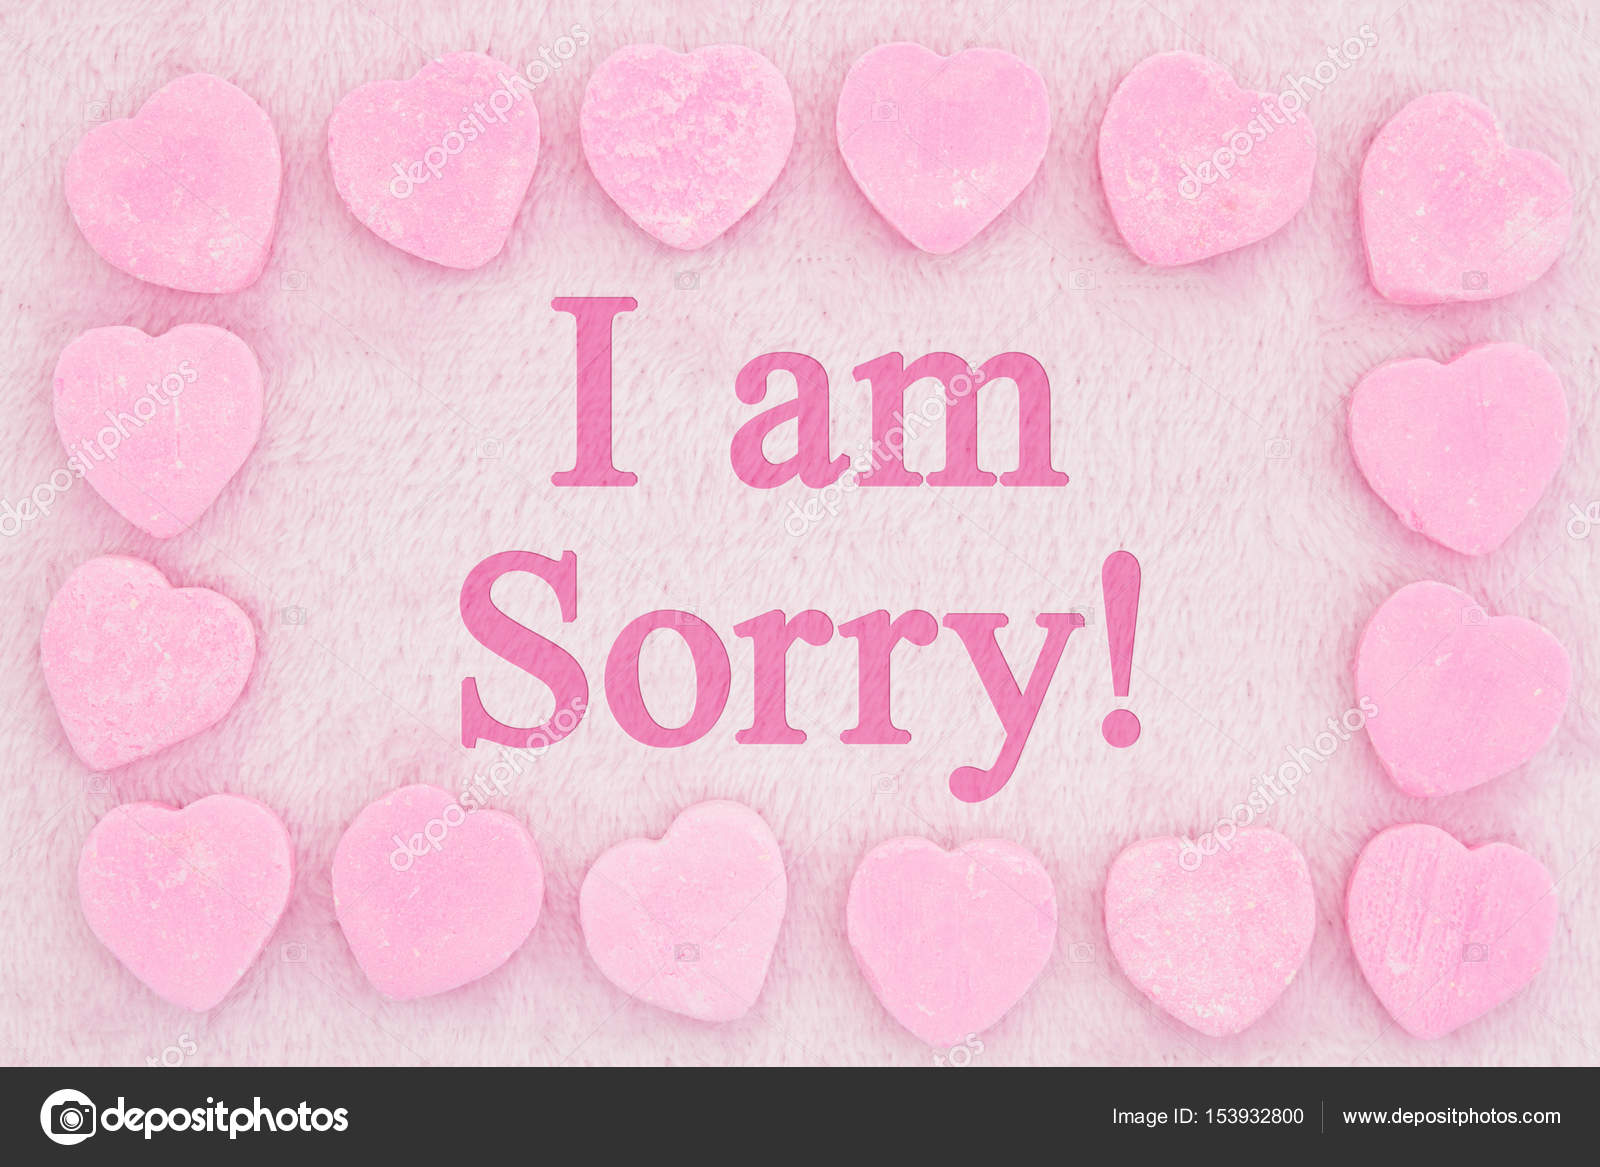 Old fashion i am sorry message stock photo karenr 153932800 old fashion i am sorry message stock photo thecheapjerseys Images